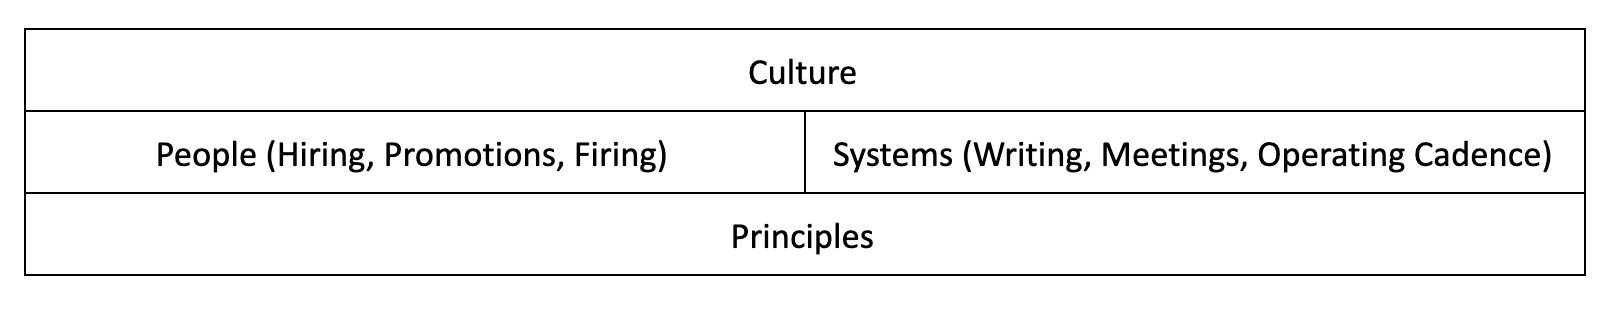 Culture | People (Hiring, Promotions, Firing) - Systems (Writing, Meetings, Operating Cadence) | Principles